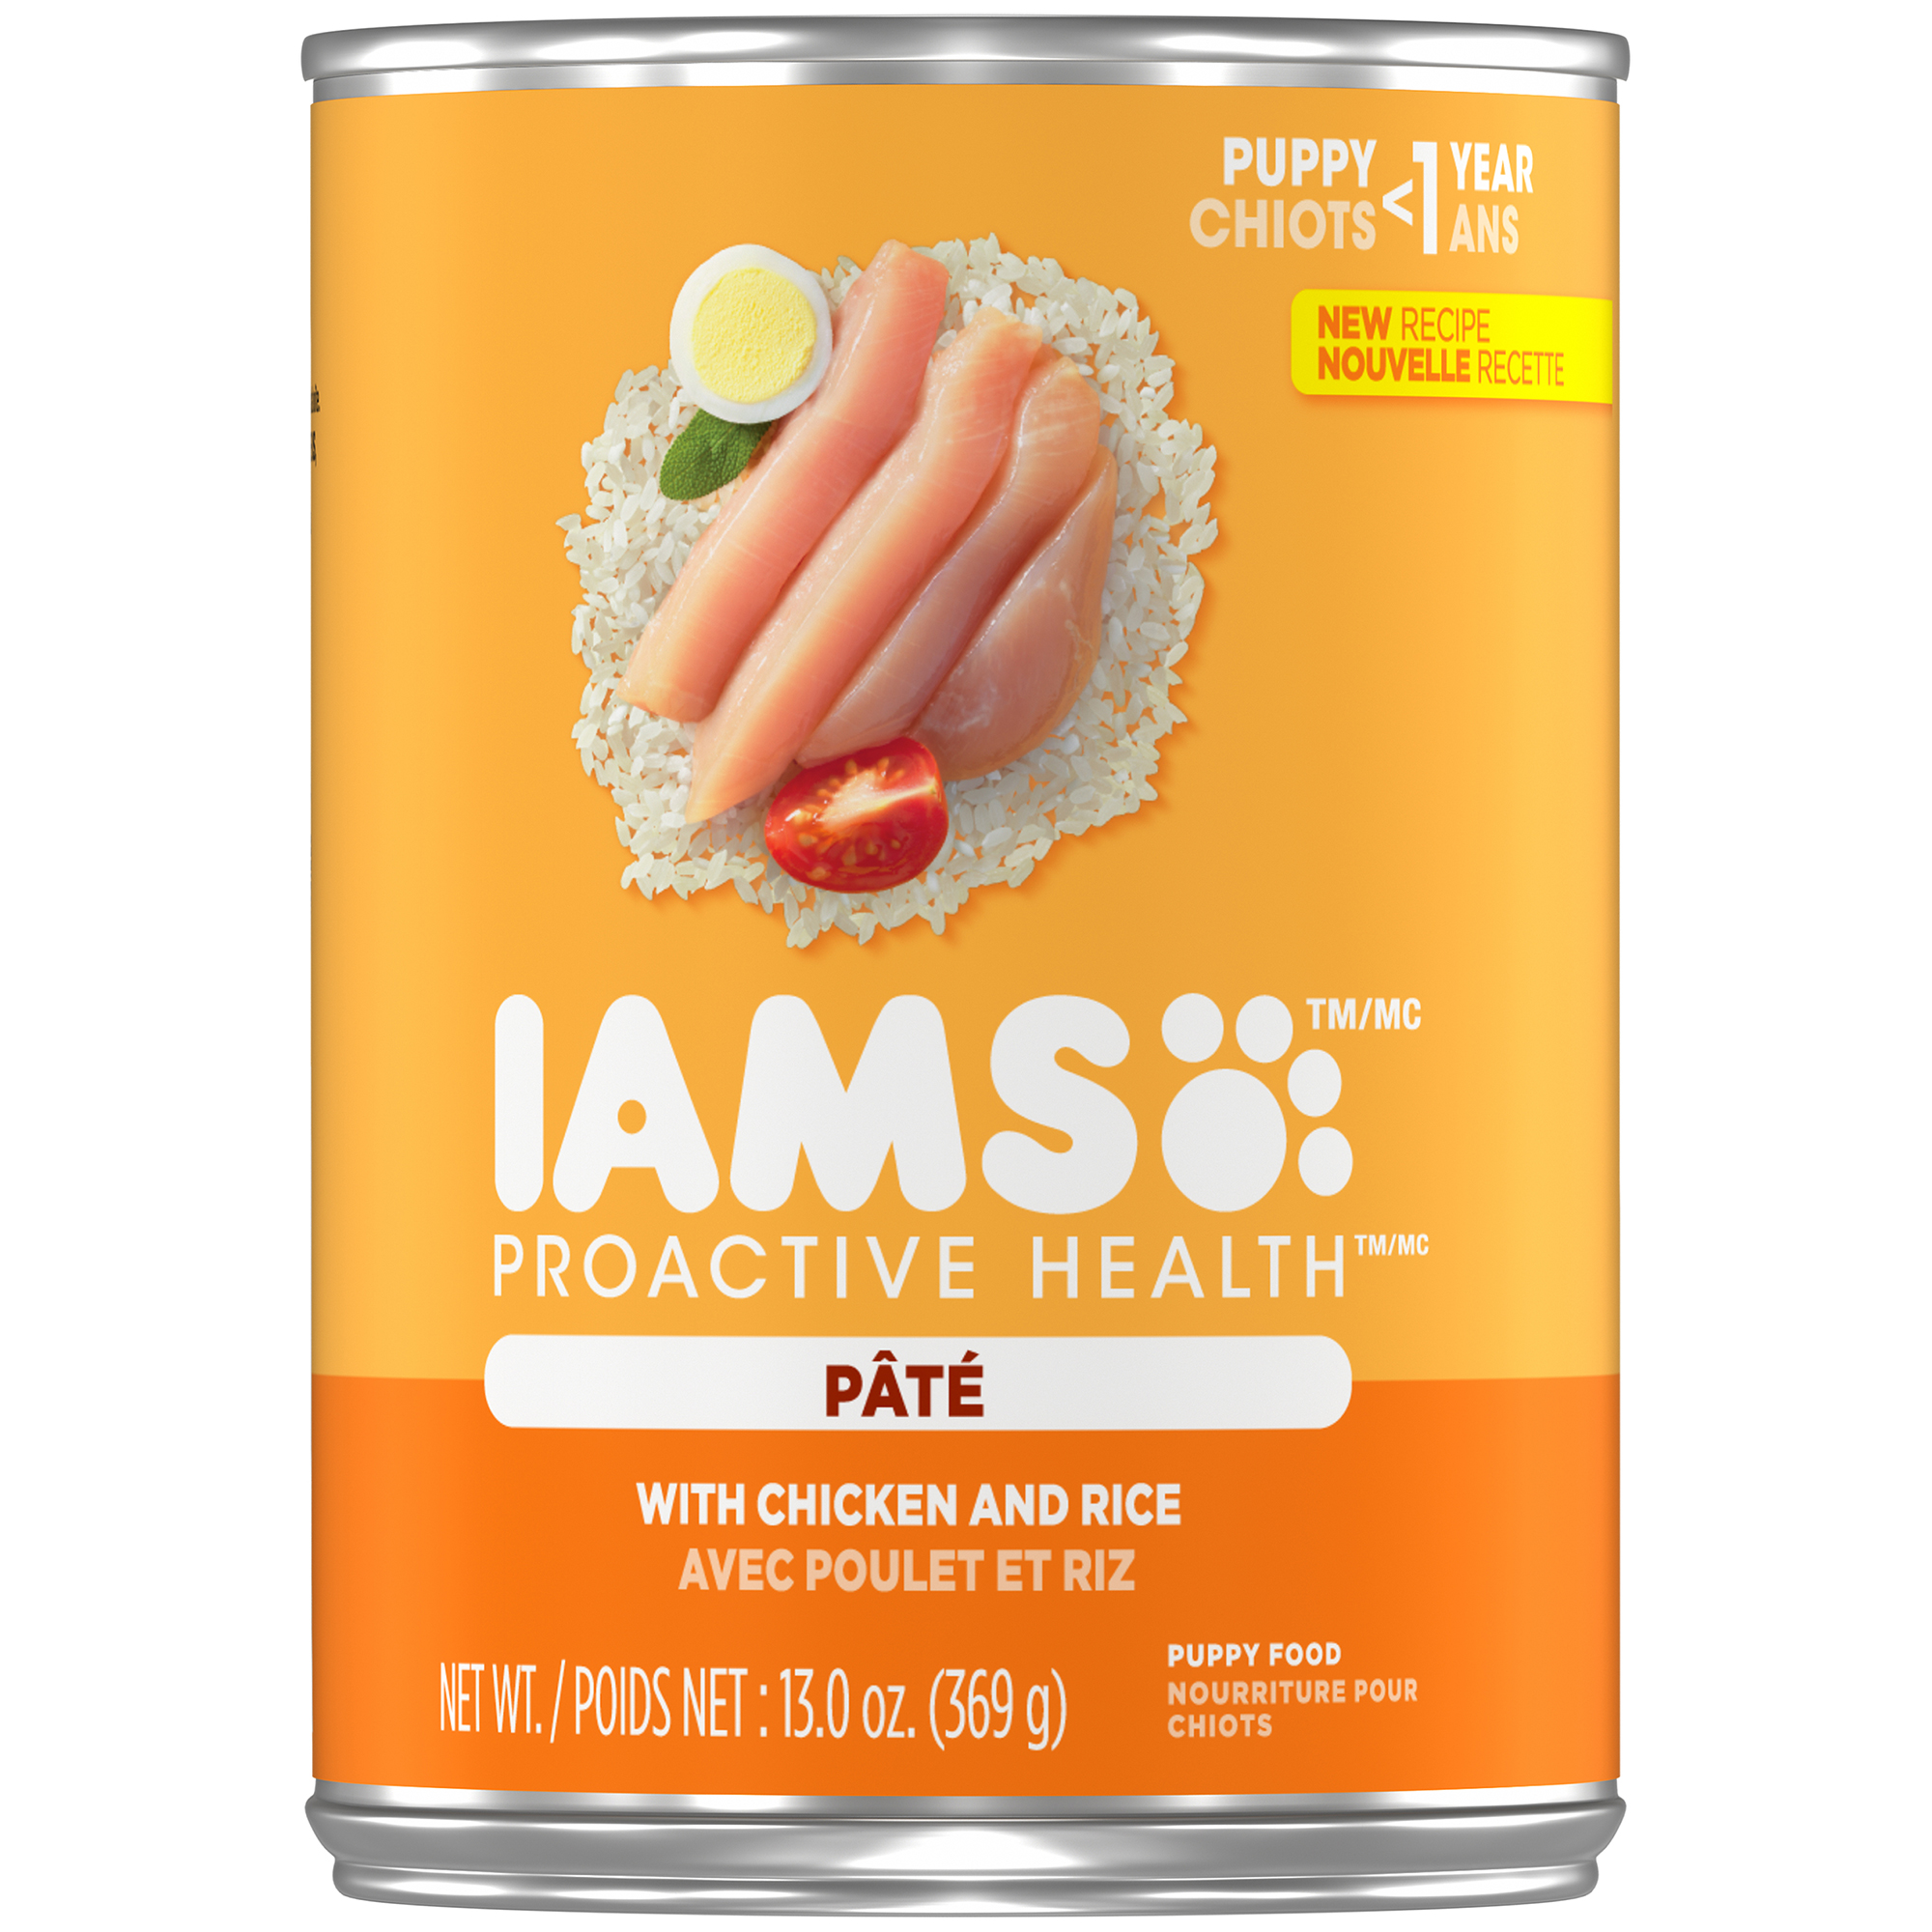 IAMS PROACTIVE HEALTH PUPPY With Chicken and Rice Pate Wet Dog Food 13.0 Ounces